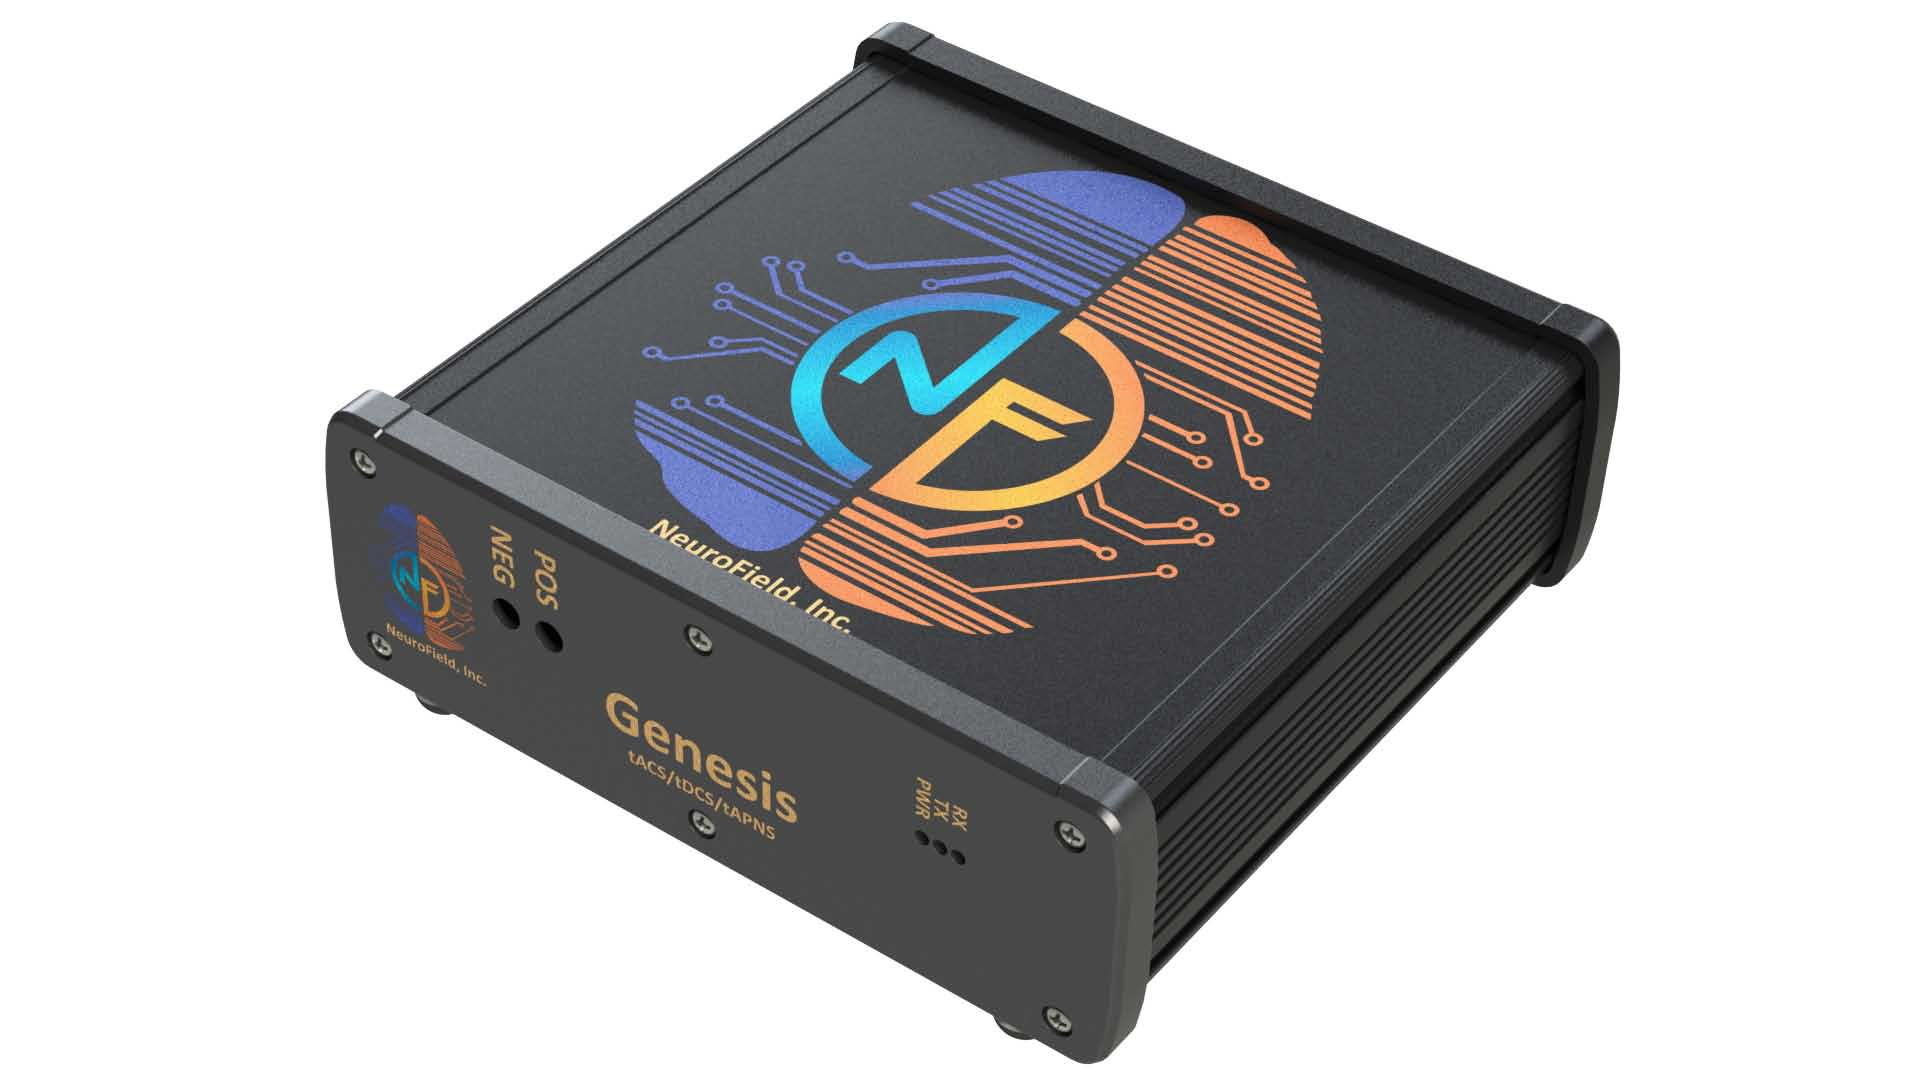 Extruded aluminum enclosure with vibrant digital printing graphics and machining